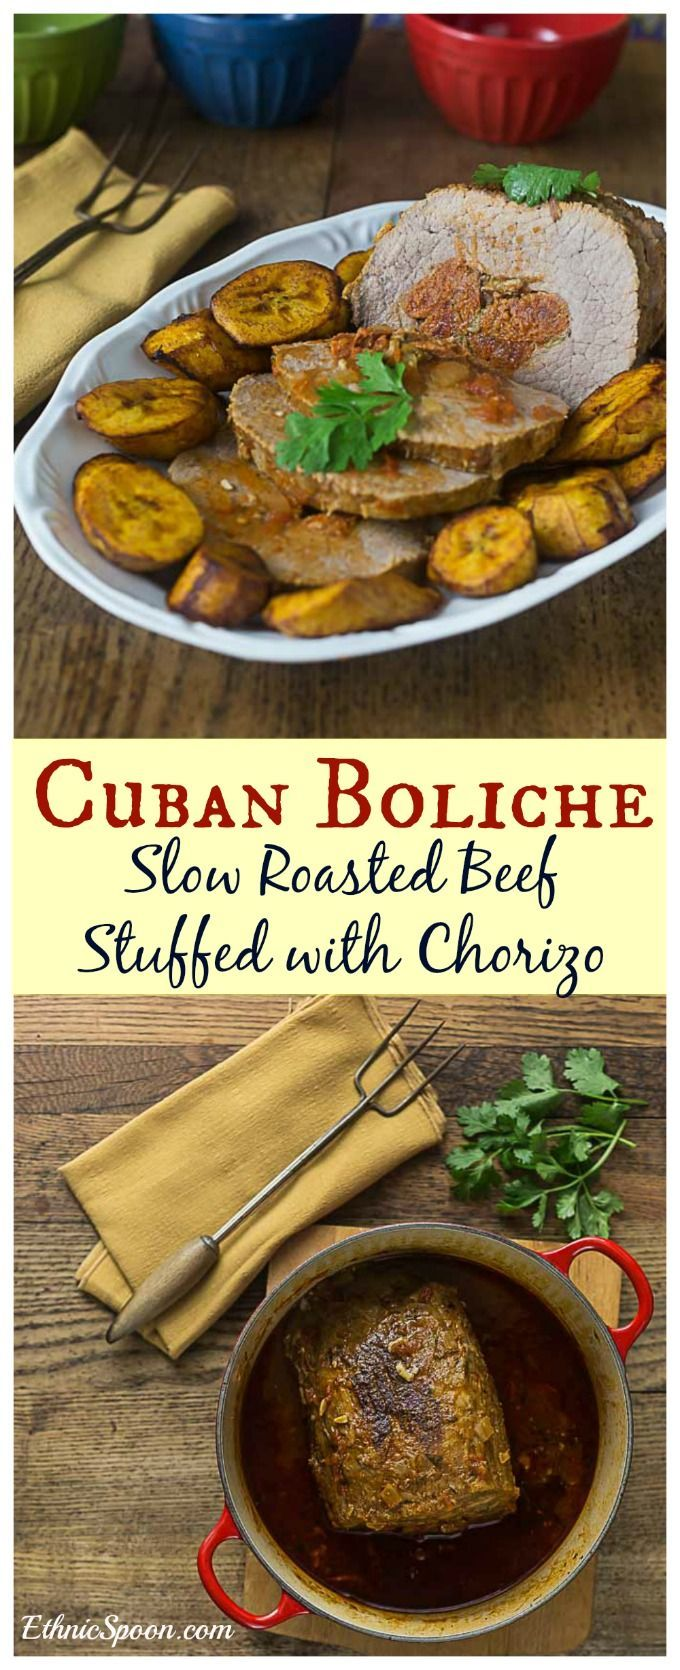 How to make Cuban boliche: A marinated roasted beef stuffed with chorizo and olives then show roasted. A great recipe for the slow cooker.   ethnicspoon.com